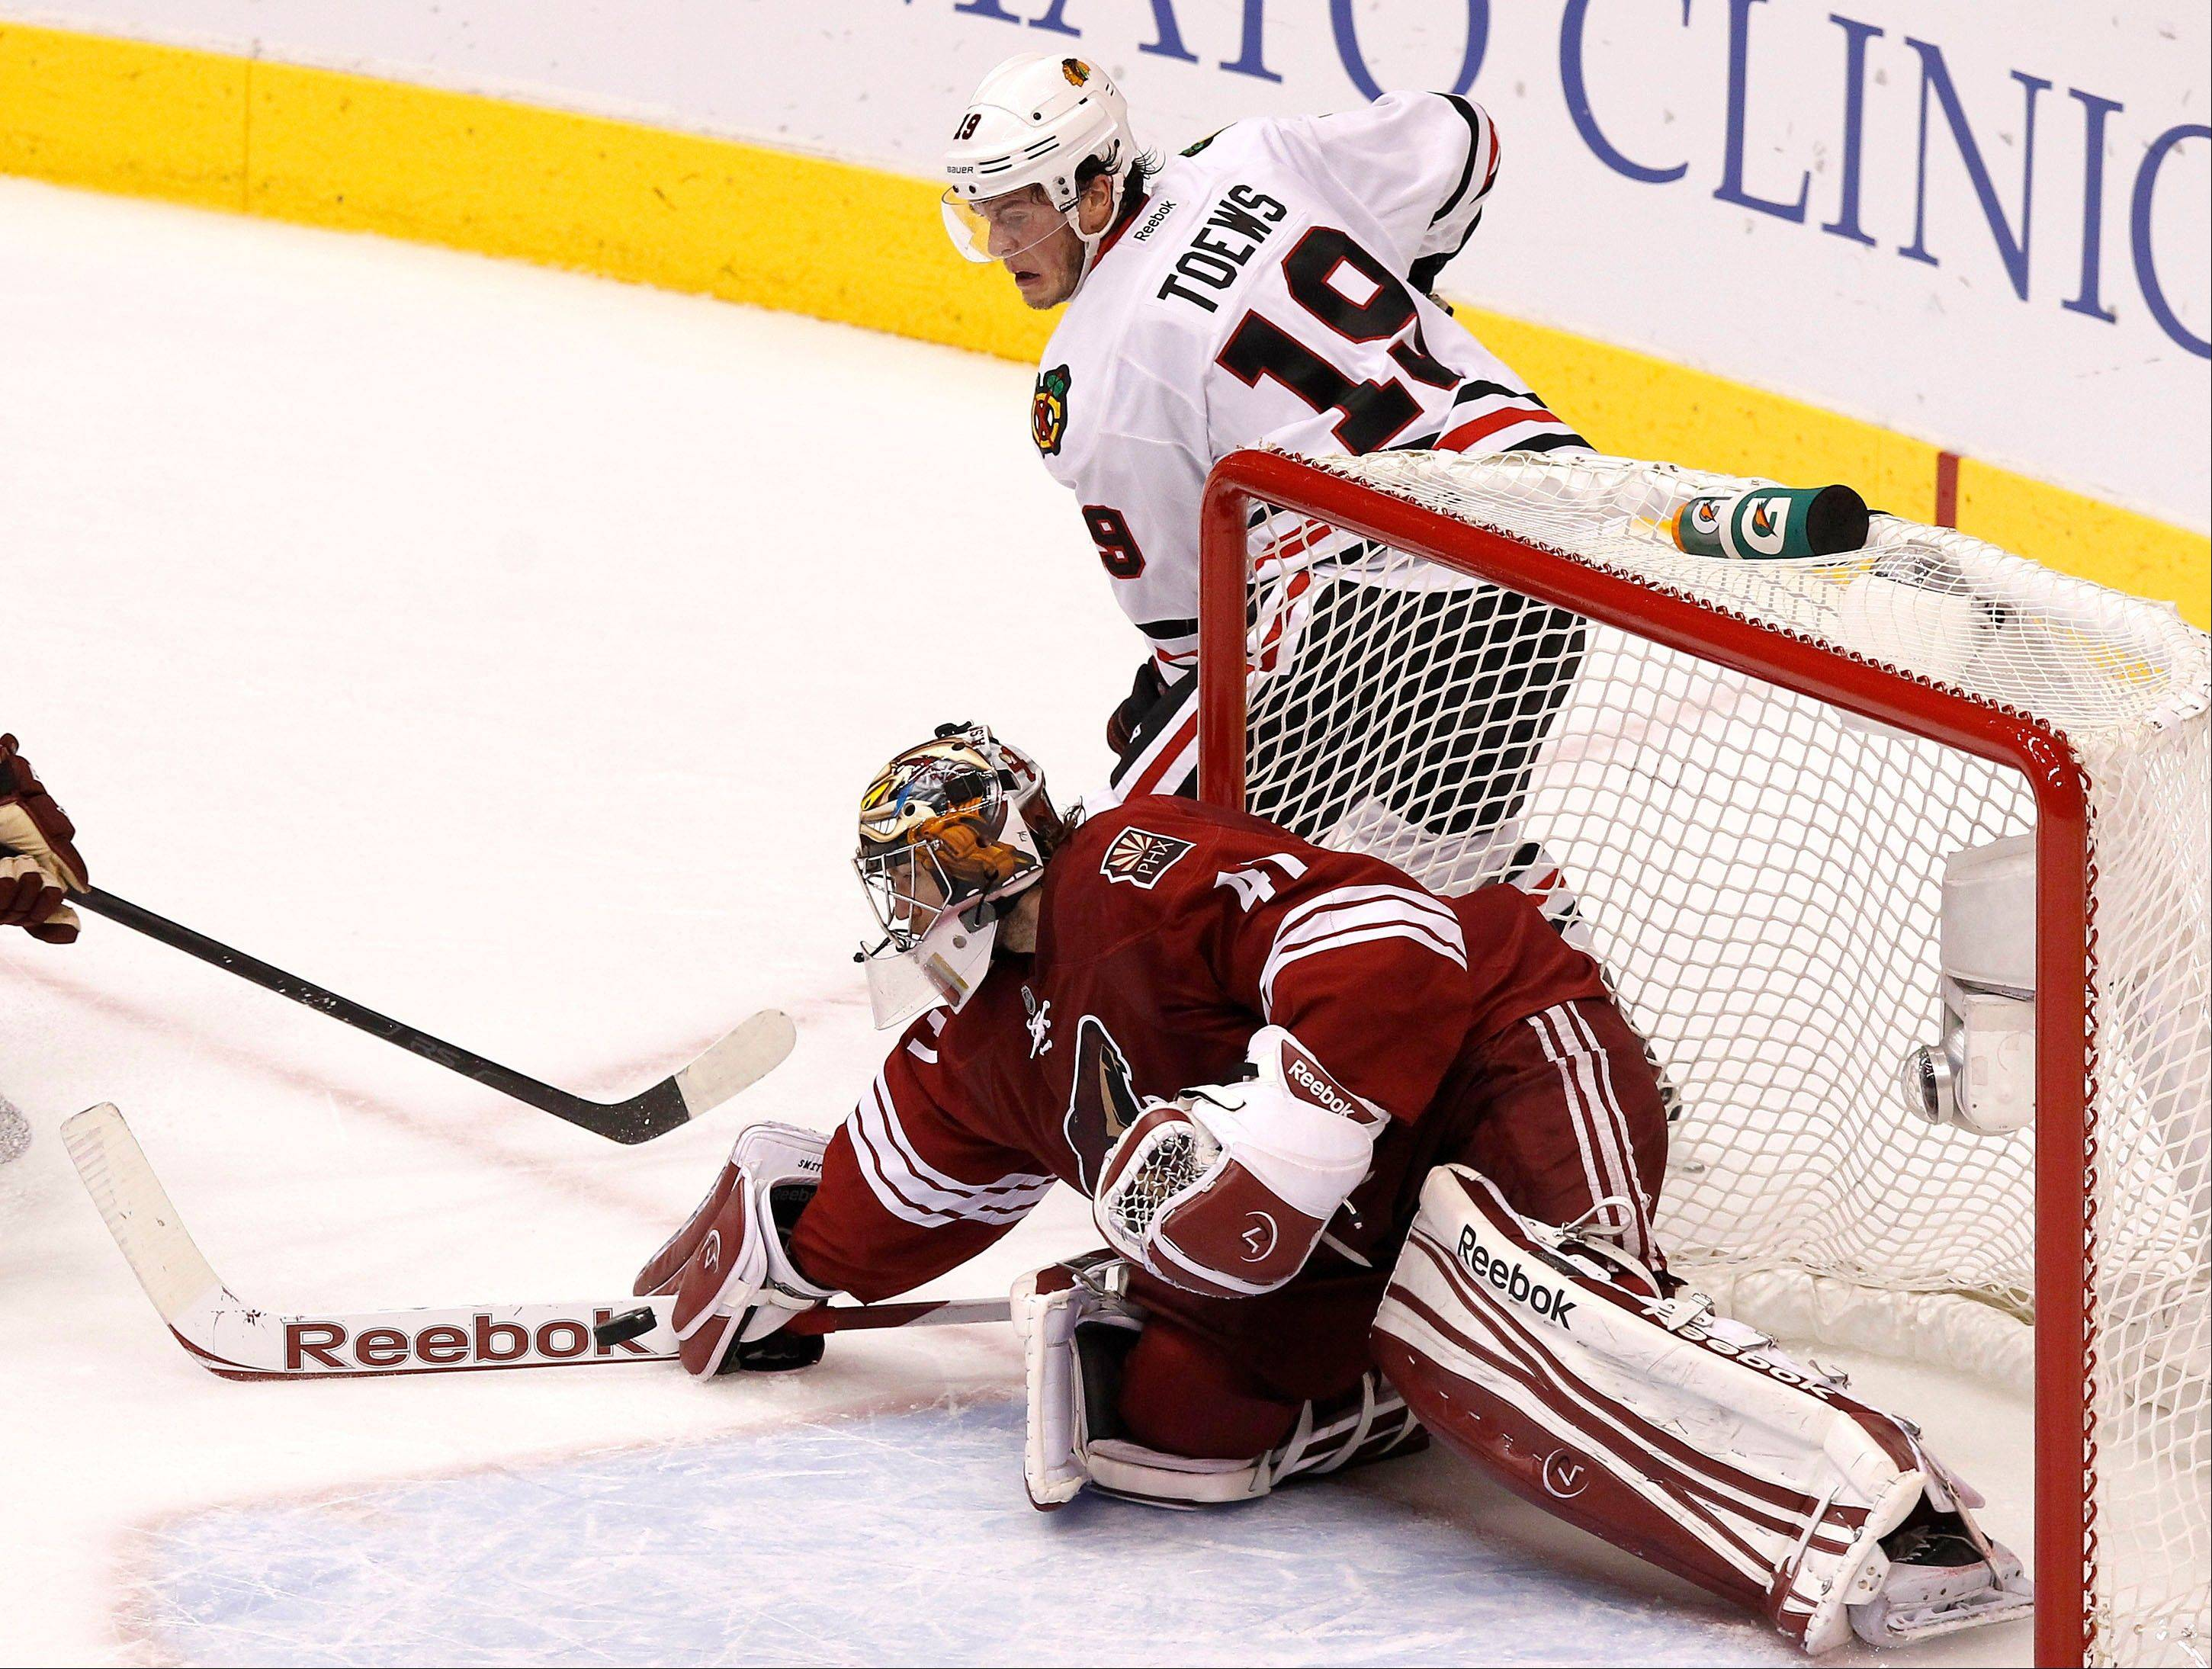 Phoenix Coyotes' Mike Smith, bottom, makes a save on a shot by Chicago Blackhawks' Jonathan Toews (19) during the first period in Game 5 of an NHL hockey Stanley Cup first-round playoff series Saturday, April 21, 2012, in Glendale, Ariz.